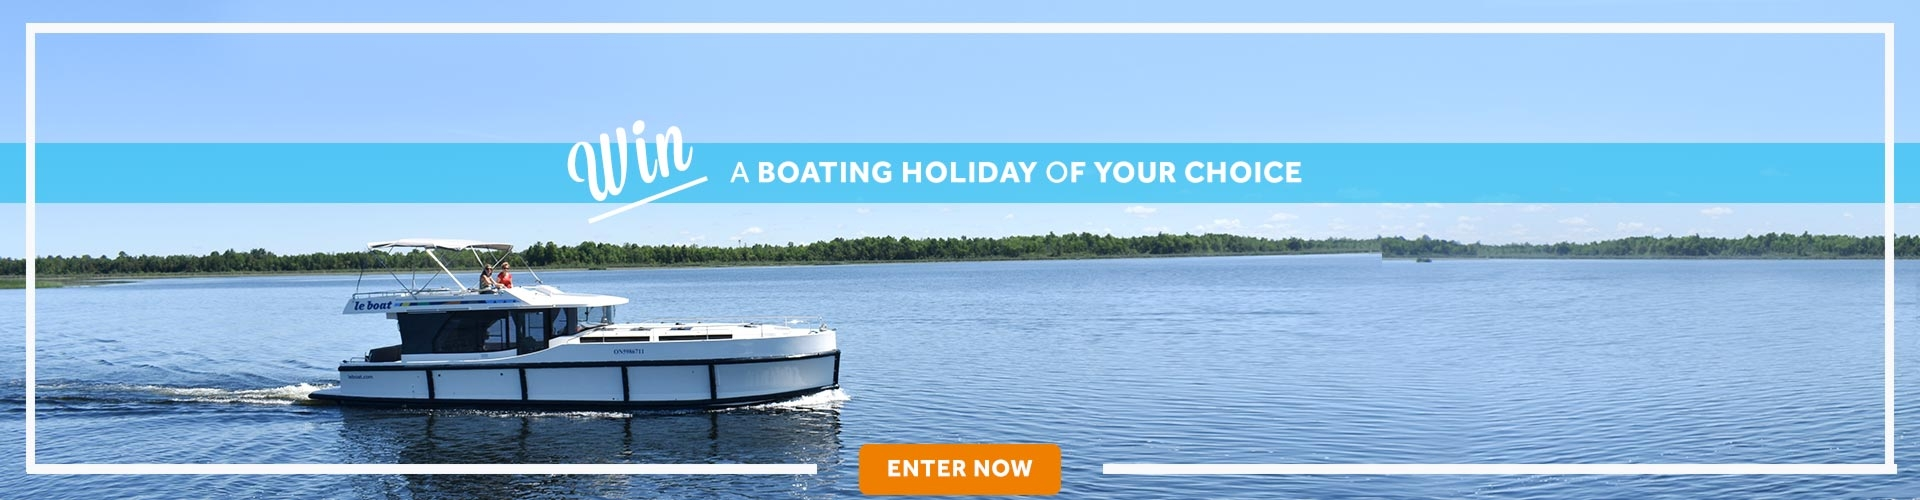 Le Boat - win a canal boat holiday